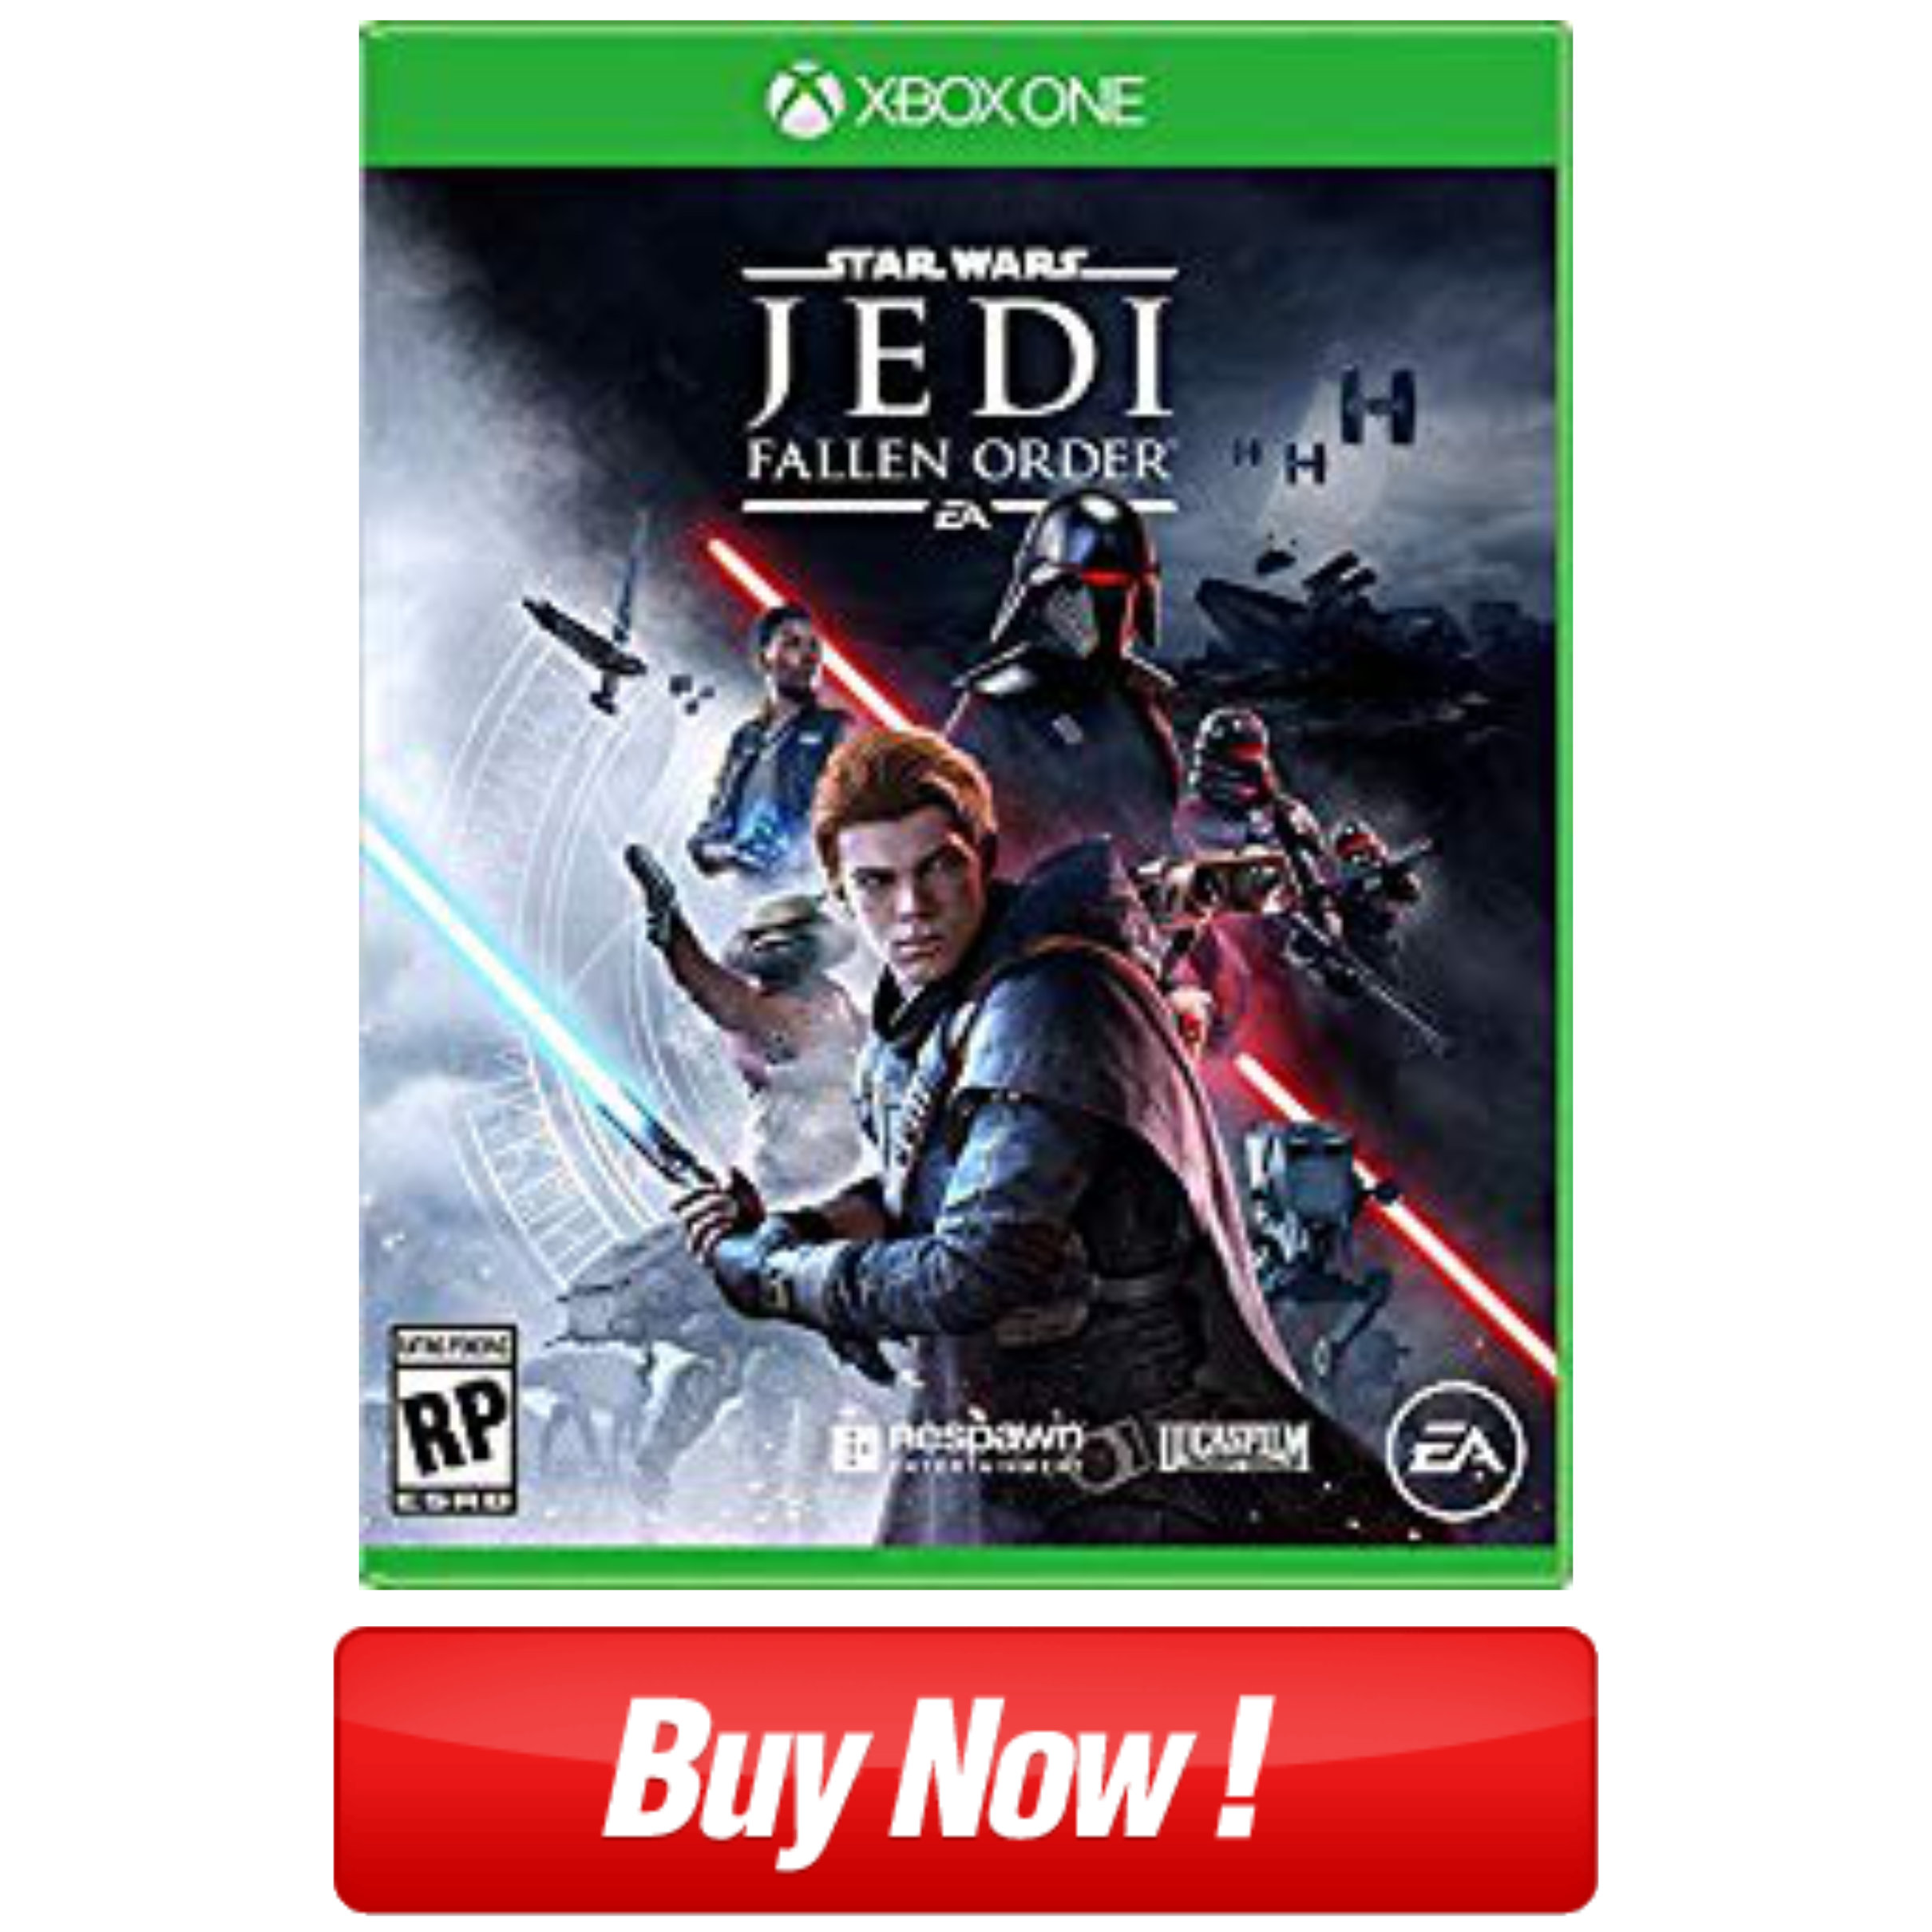 Star Wars Jedi Fallen Order Standard Edition by Electronic Arts for Xbox One at Video Game Depot Find release dates, customer reviews, previews, and more